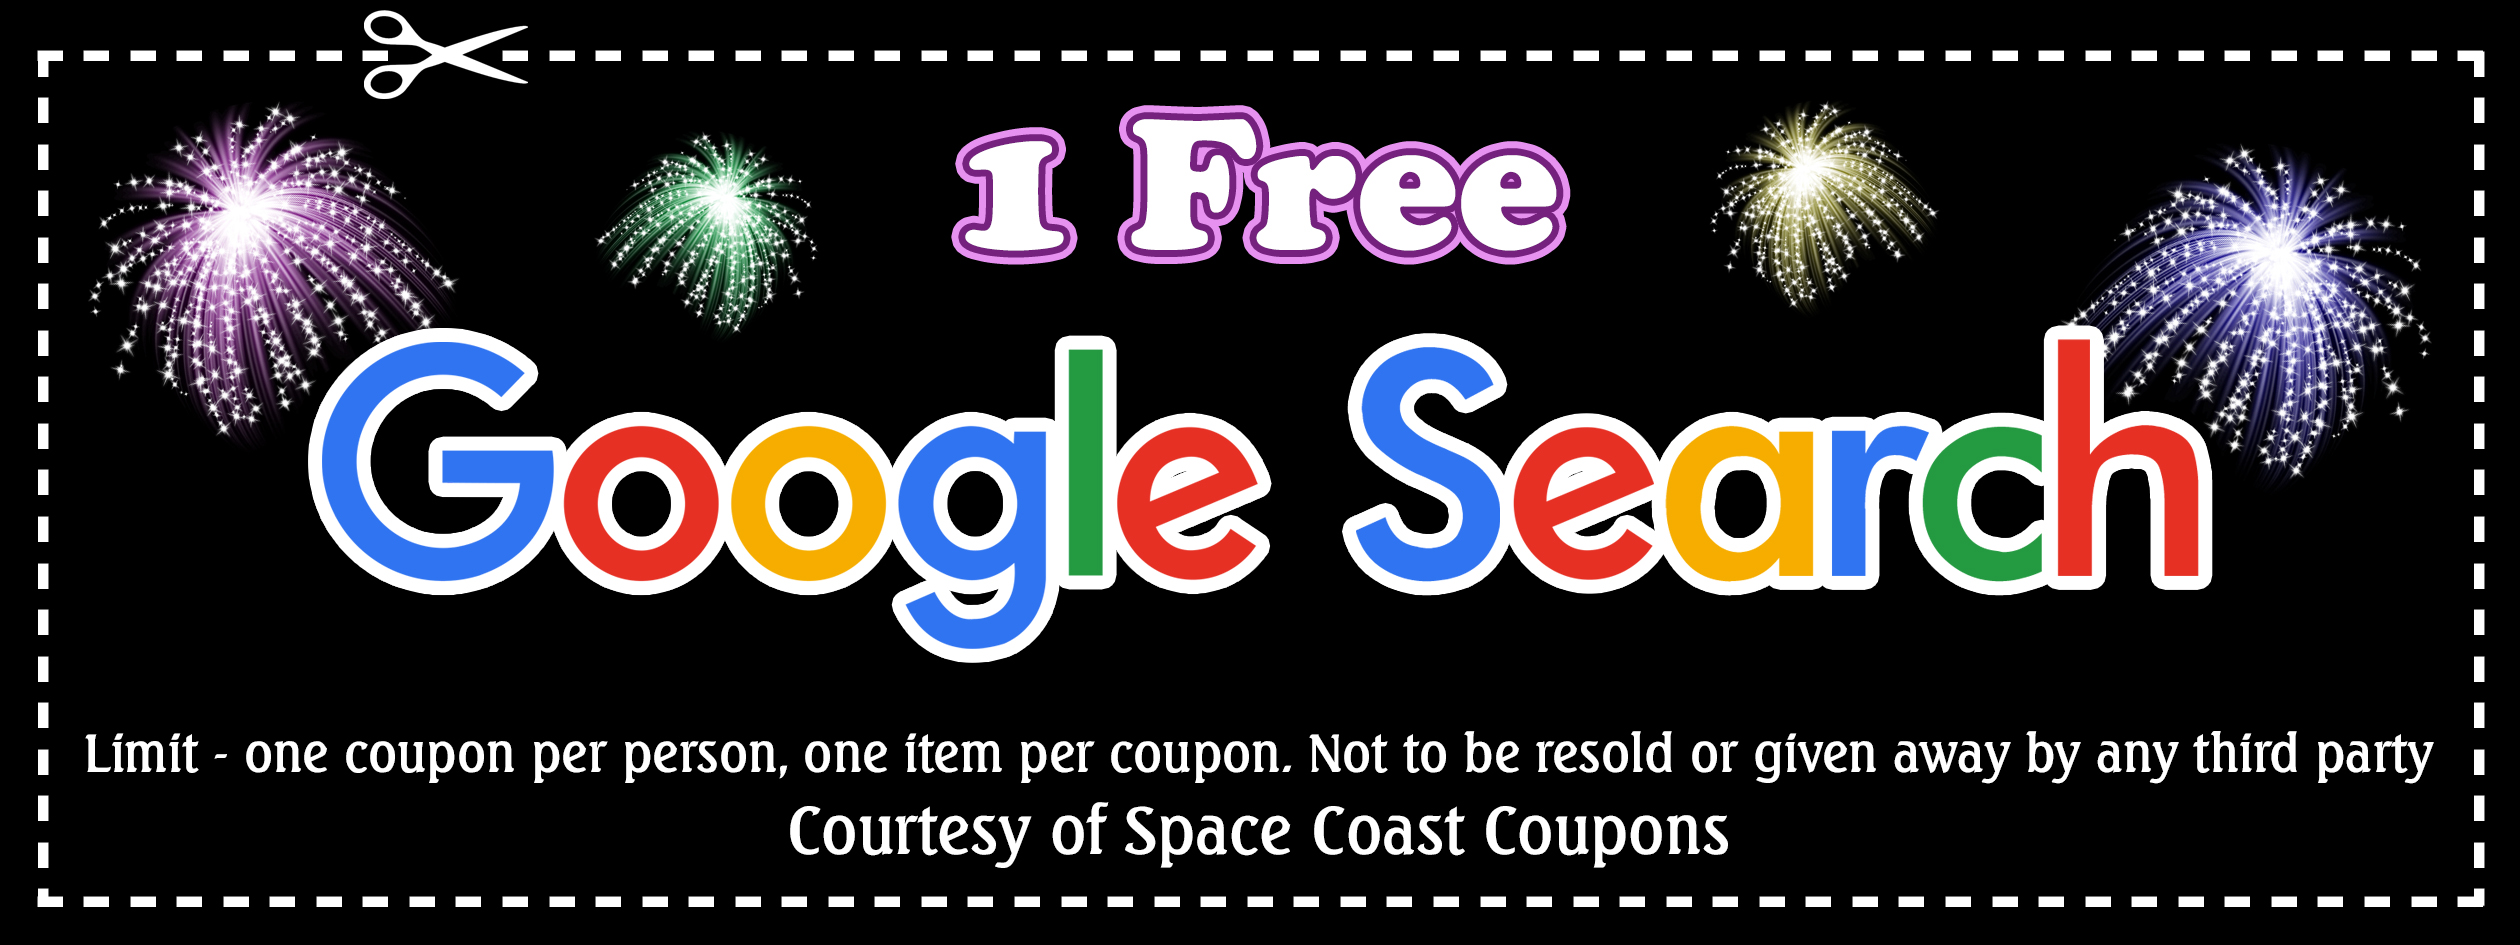 space coast coupons online coupons free google search